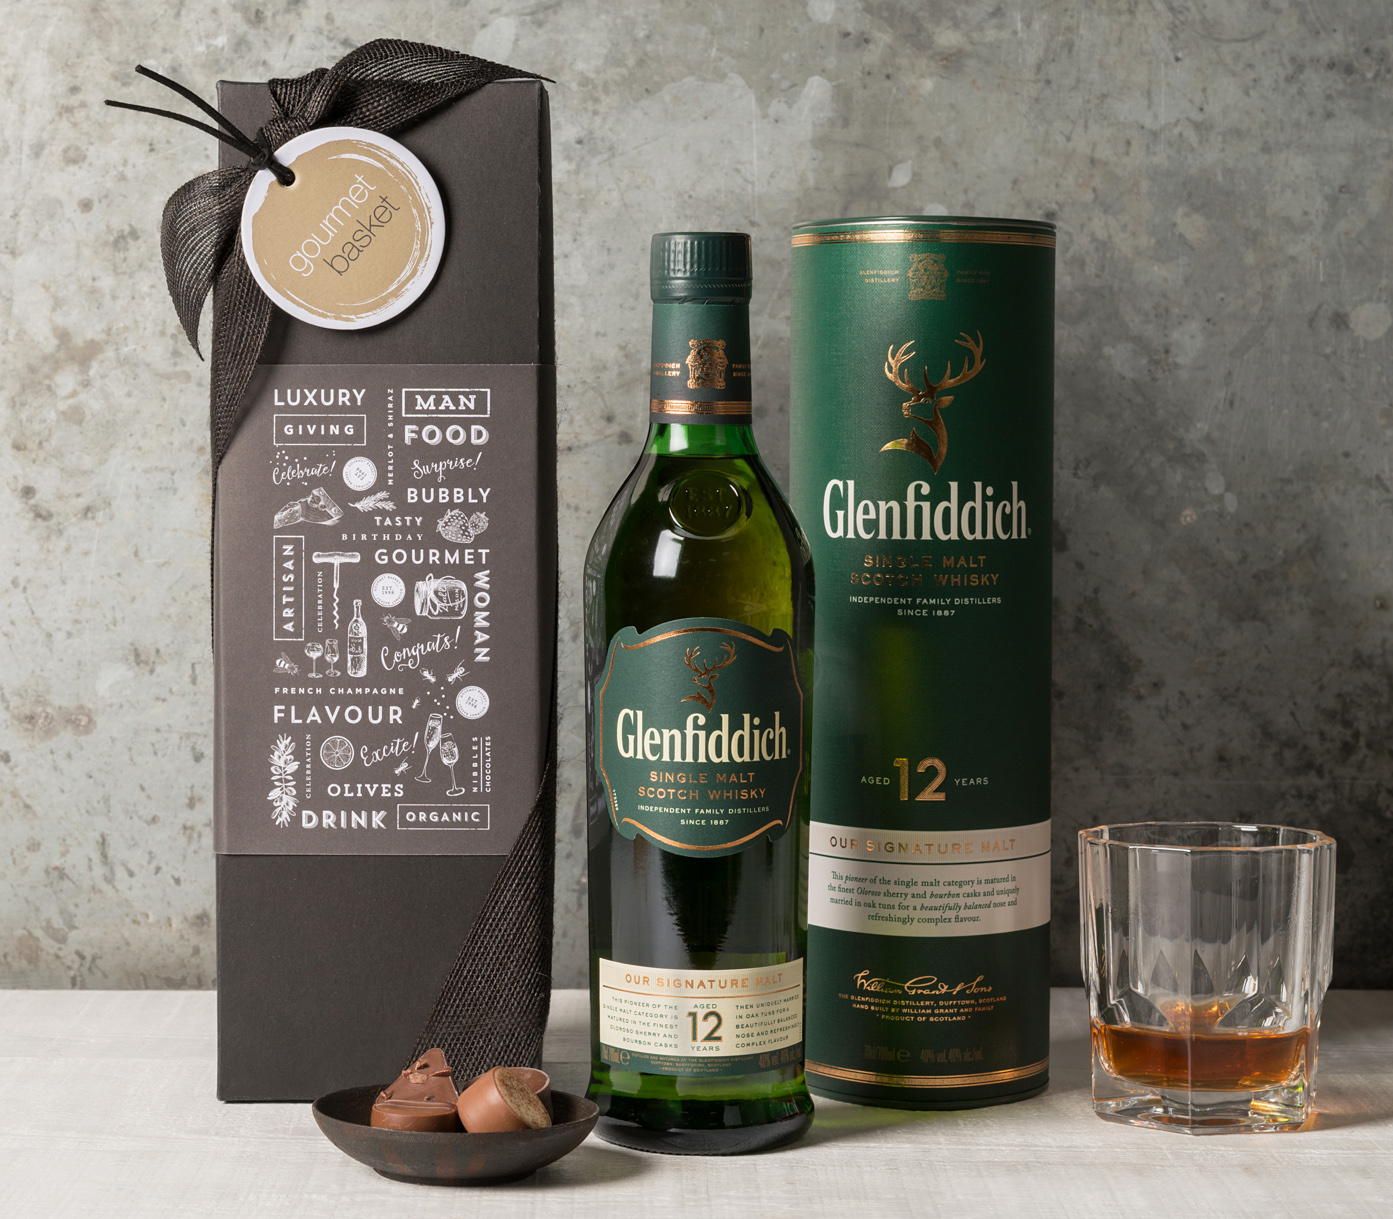 Glenfiddich 12 Yr Old Scotch Whisky | Spirits and Cocktails Gifts | Gourmet Basket